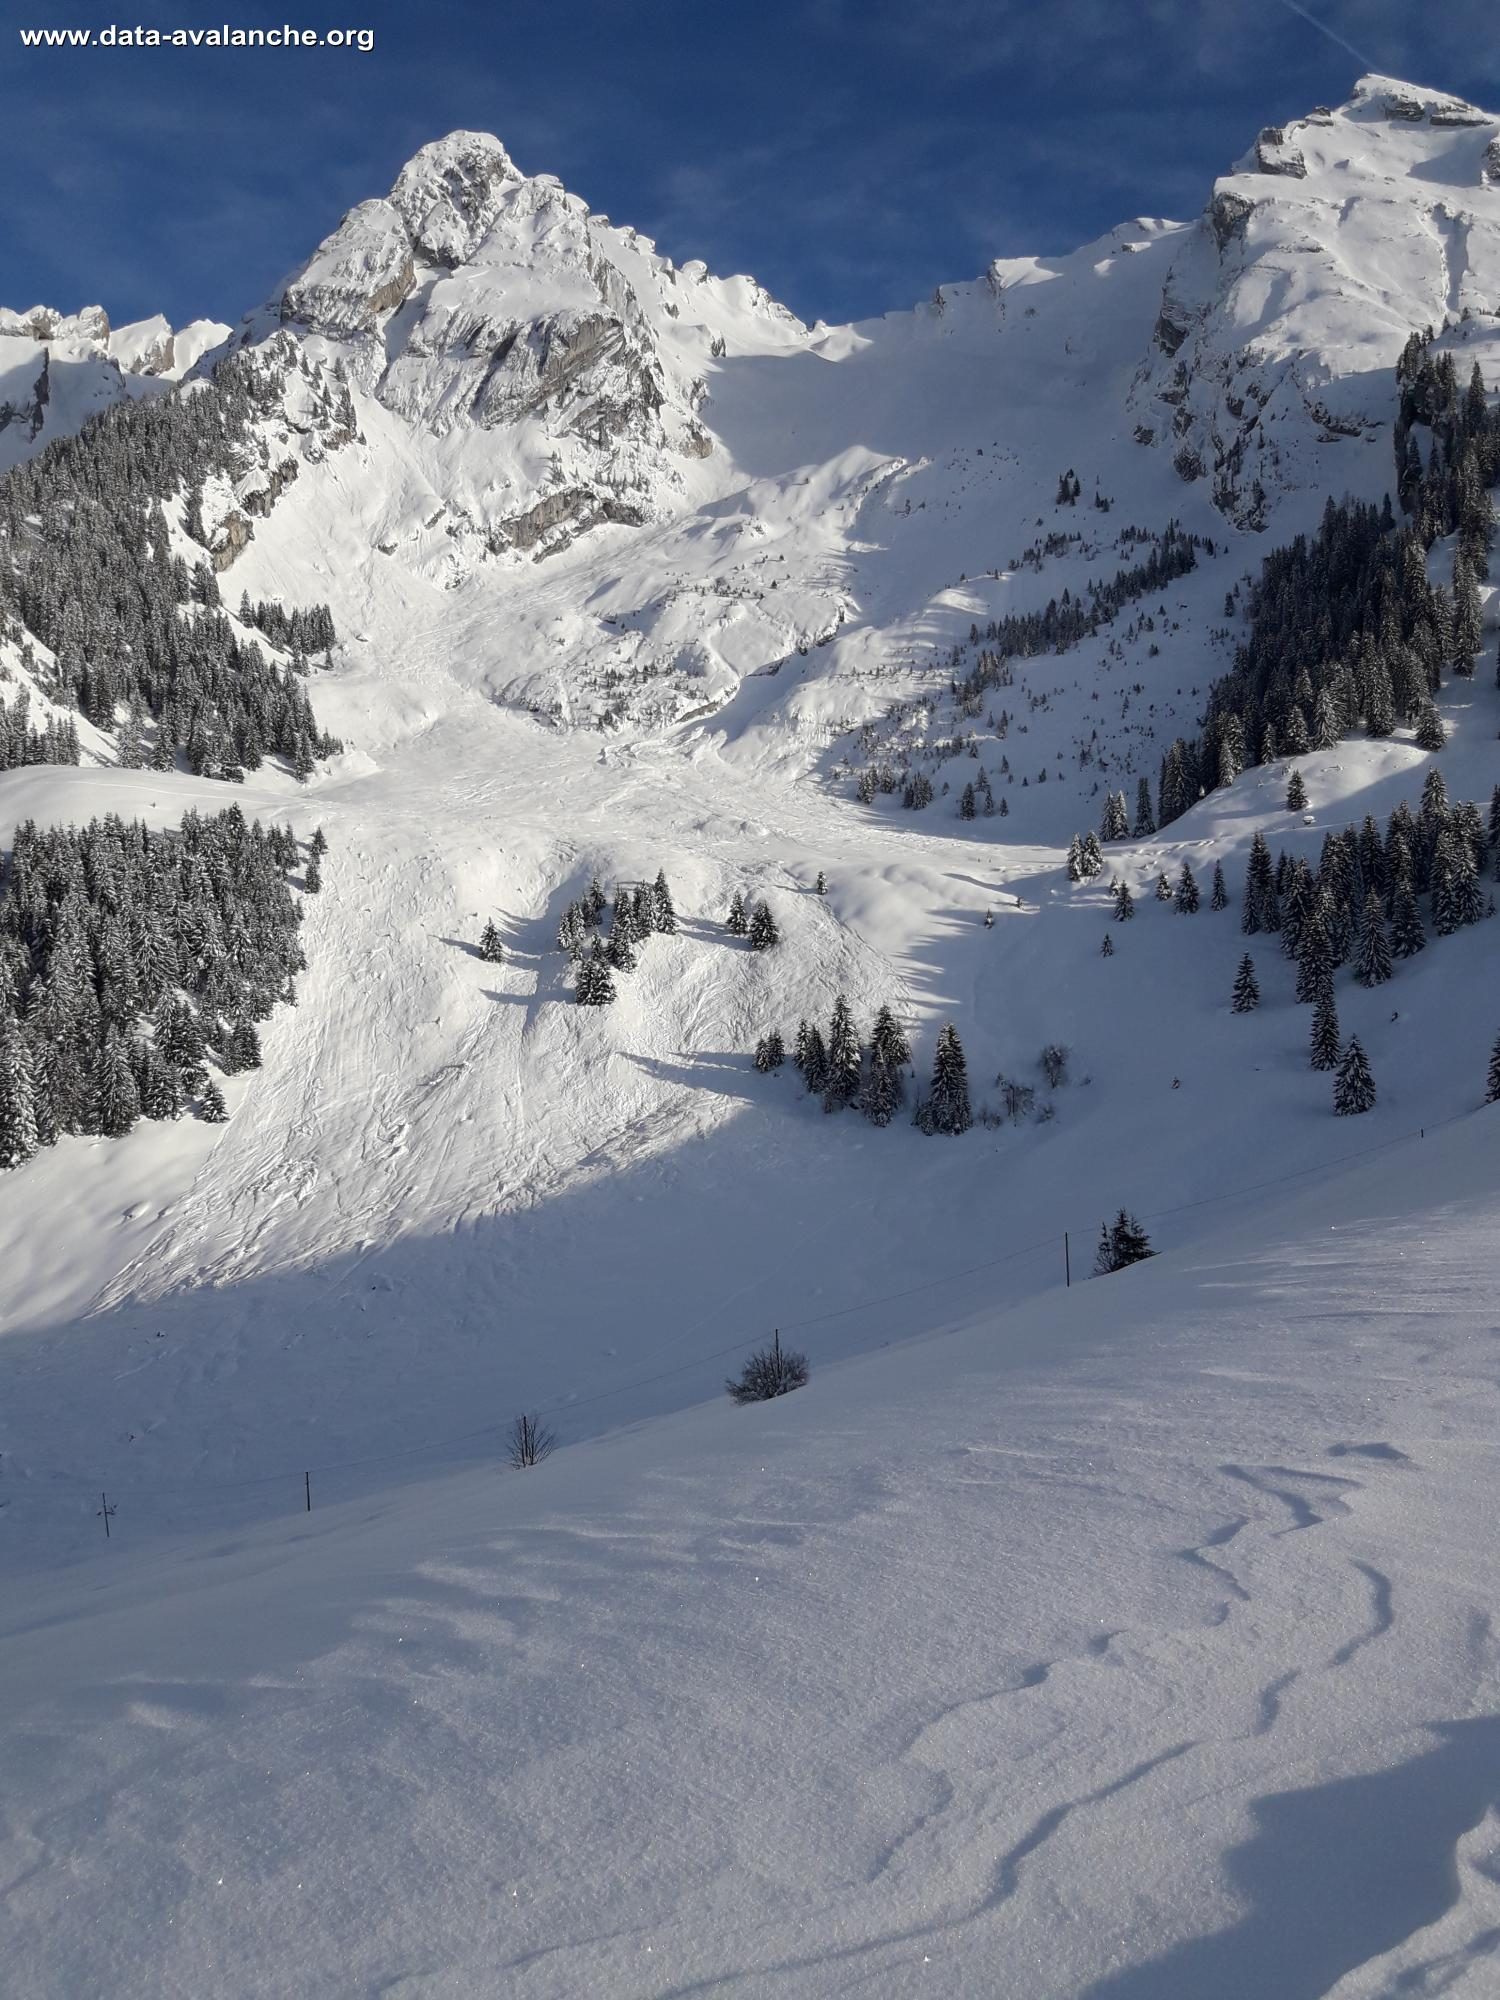 Avalanche Aravis, secteur combe de grand crêt, Combe du Grand Crêt - Photo 1